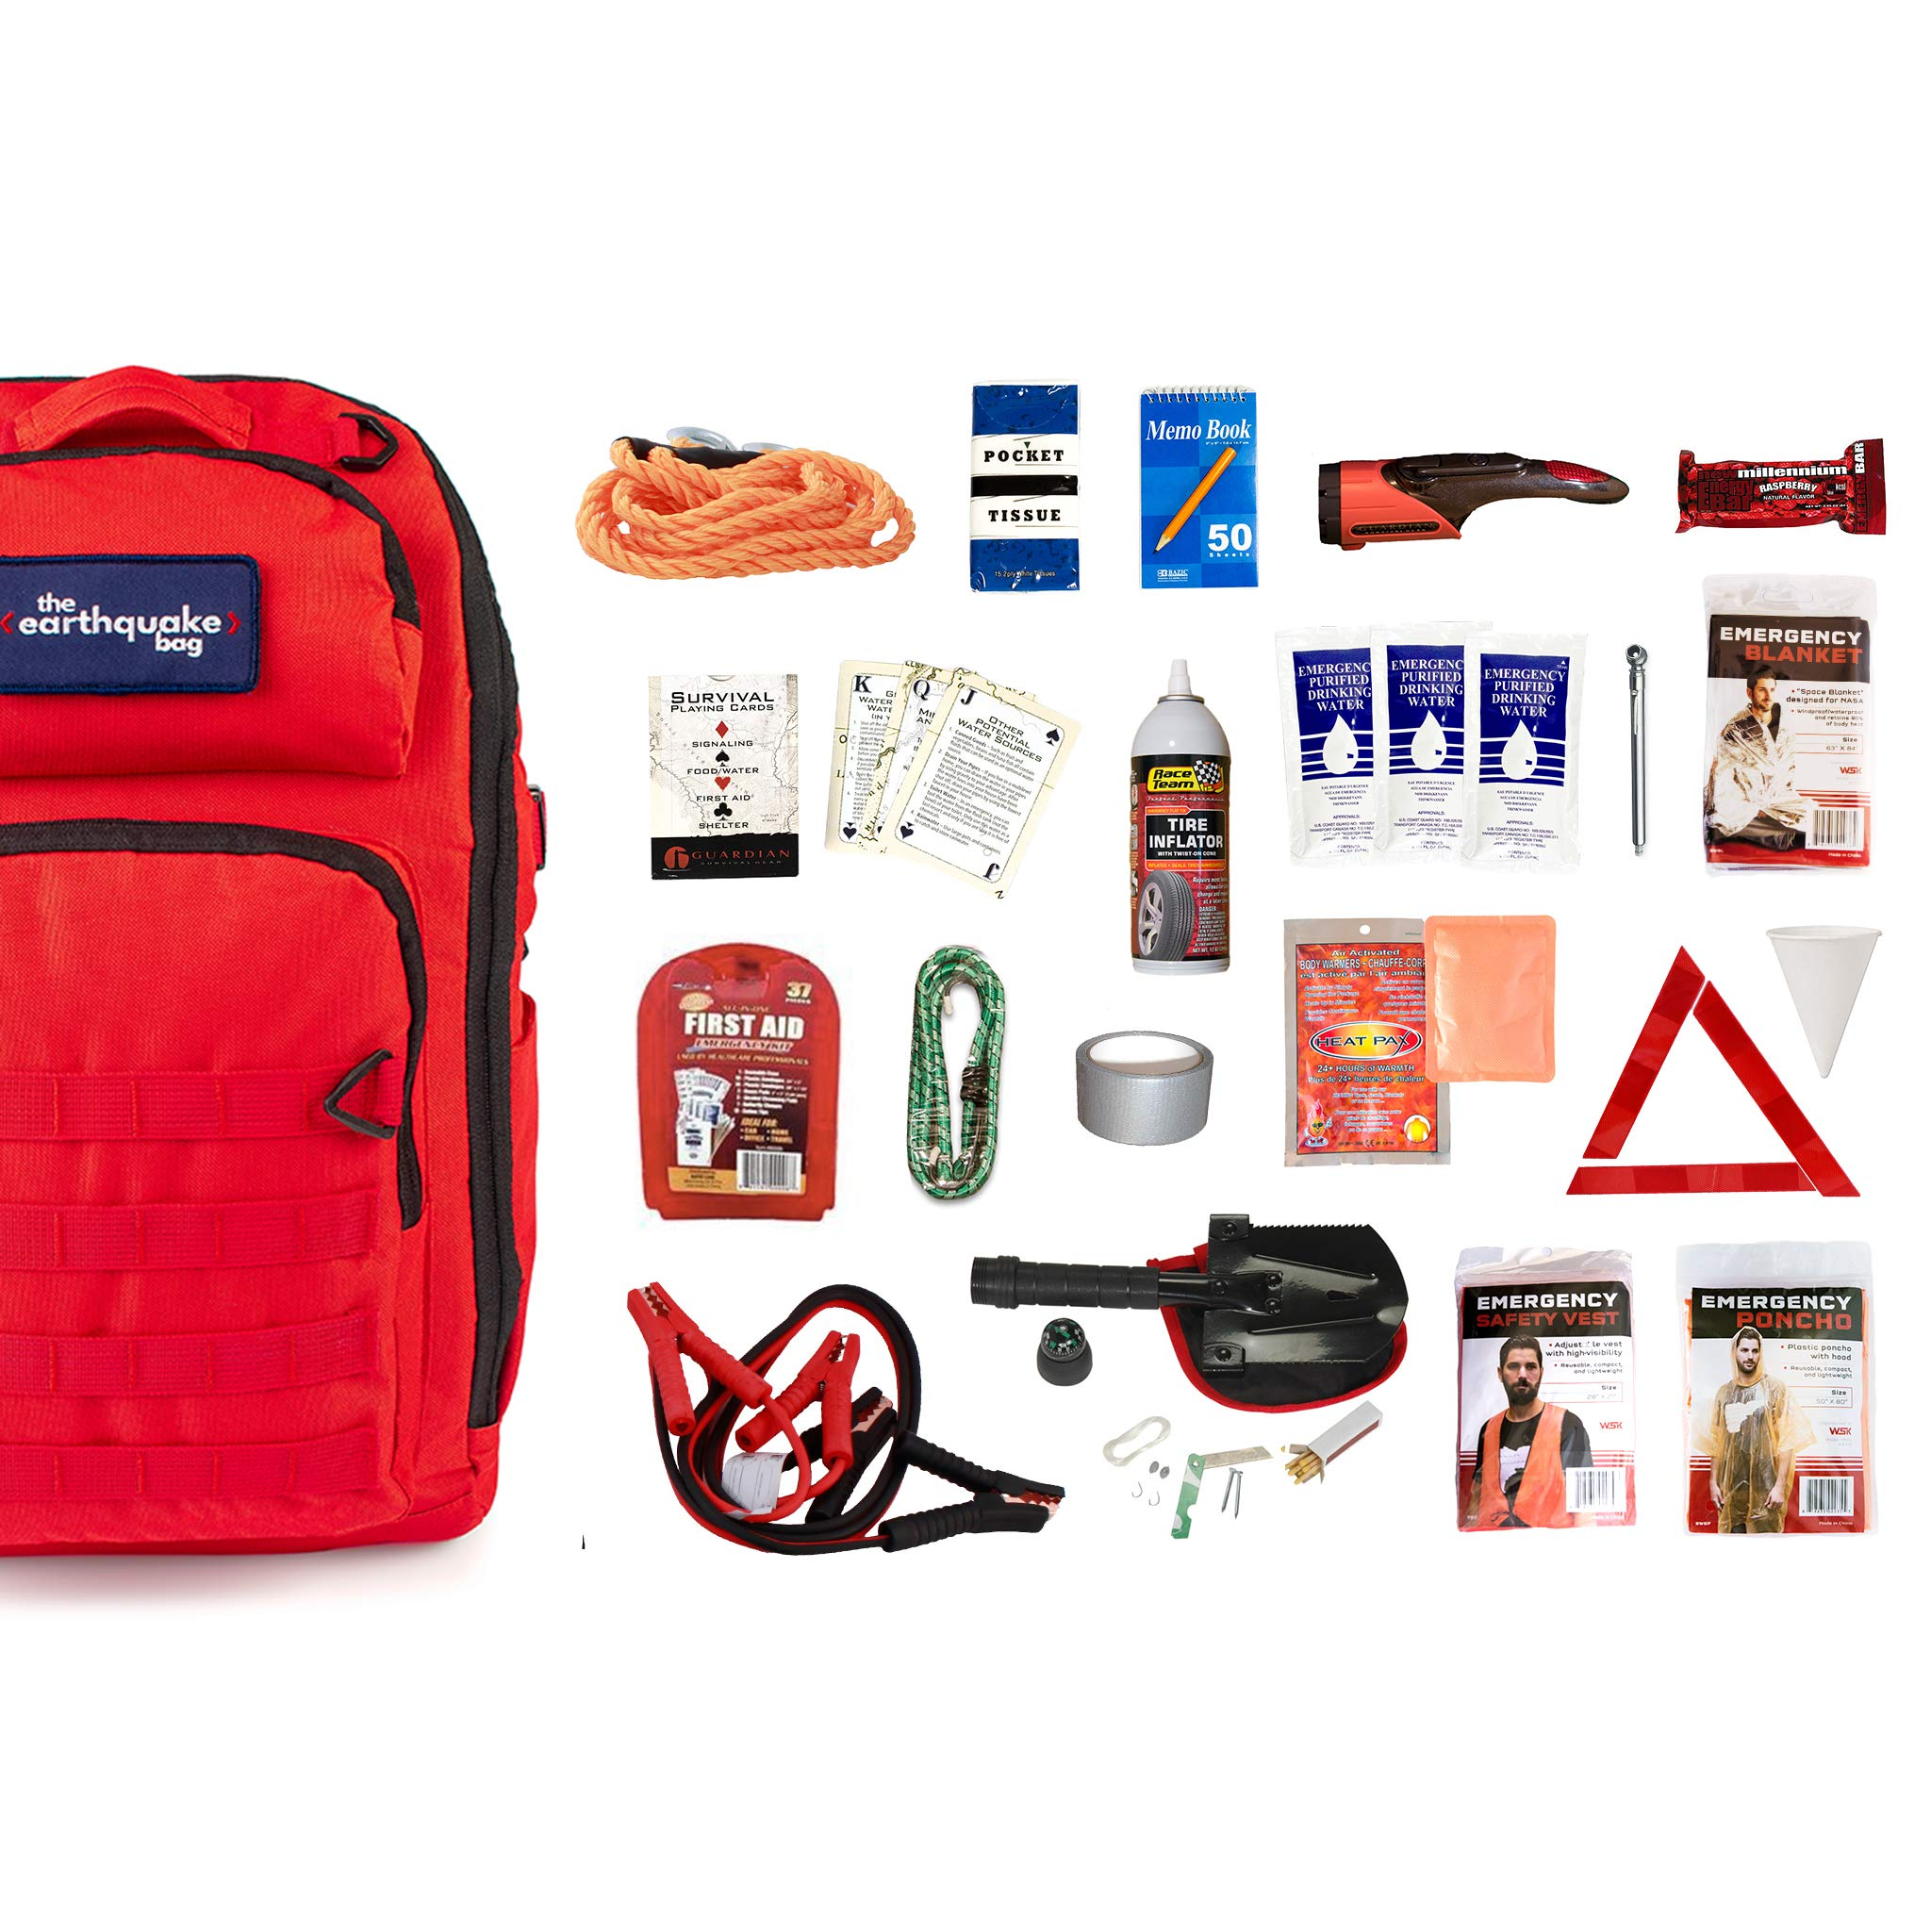 Complete Car Emergency Kit (1 Person) - Stay Safe on The Road, no Matter What Comes up